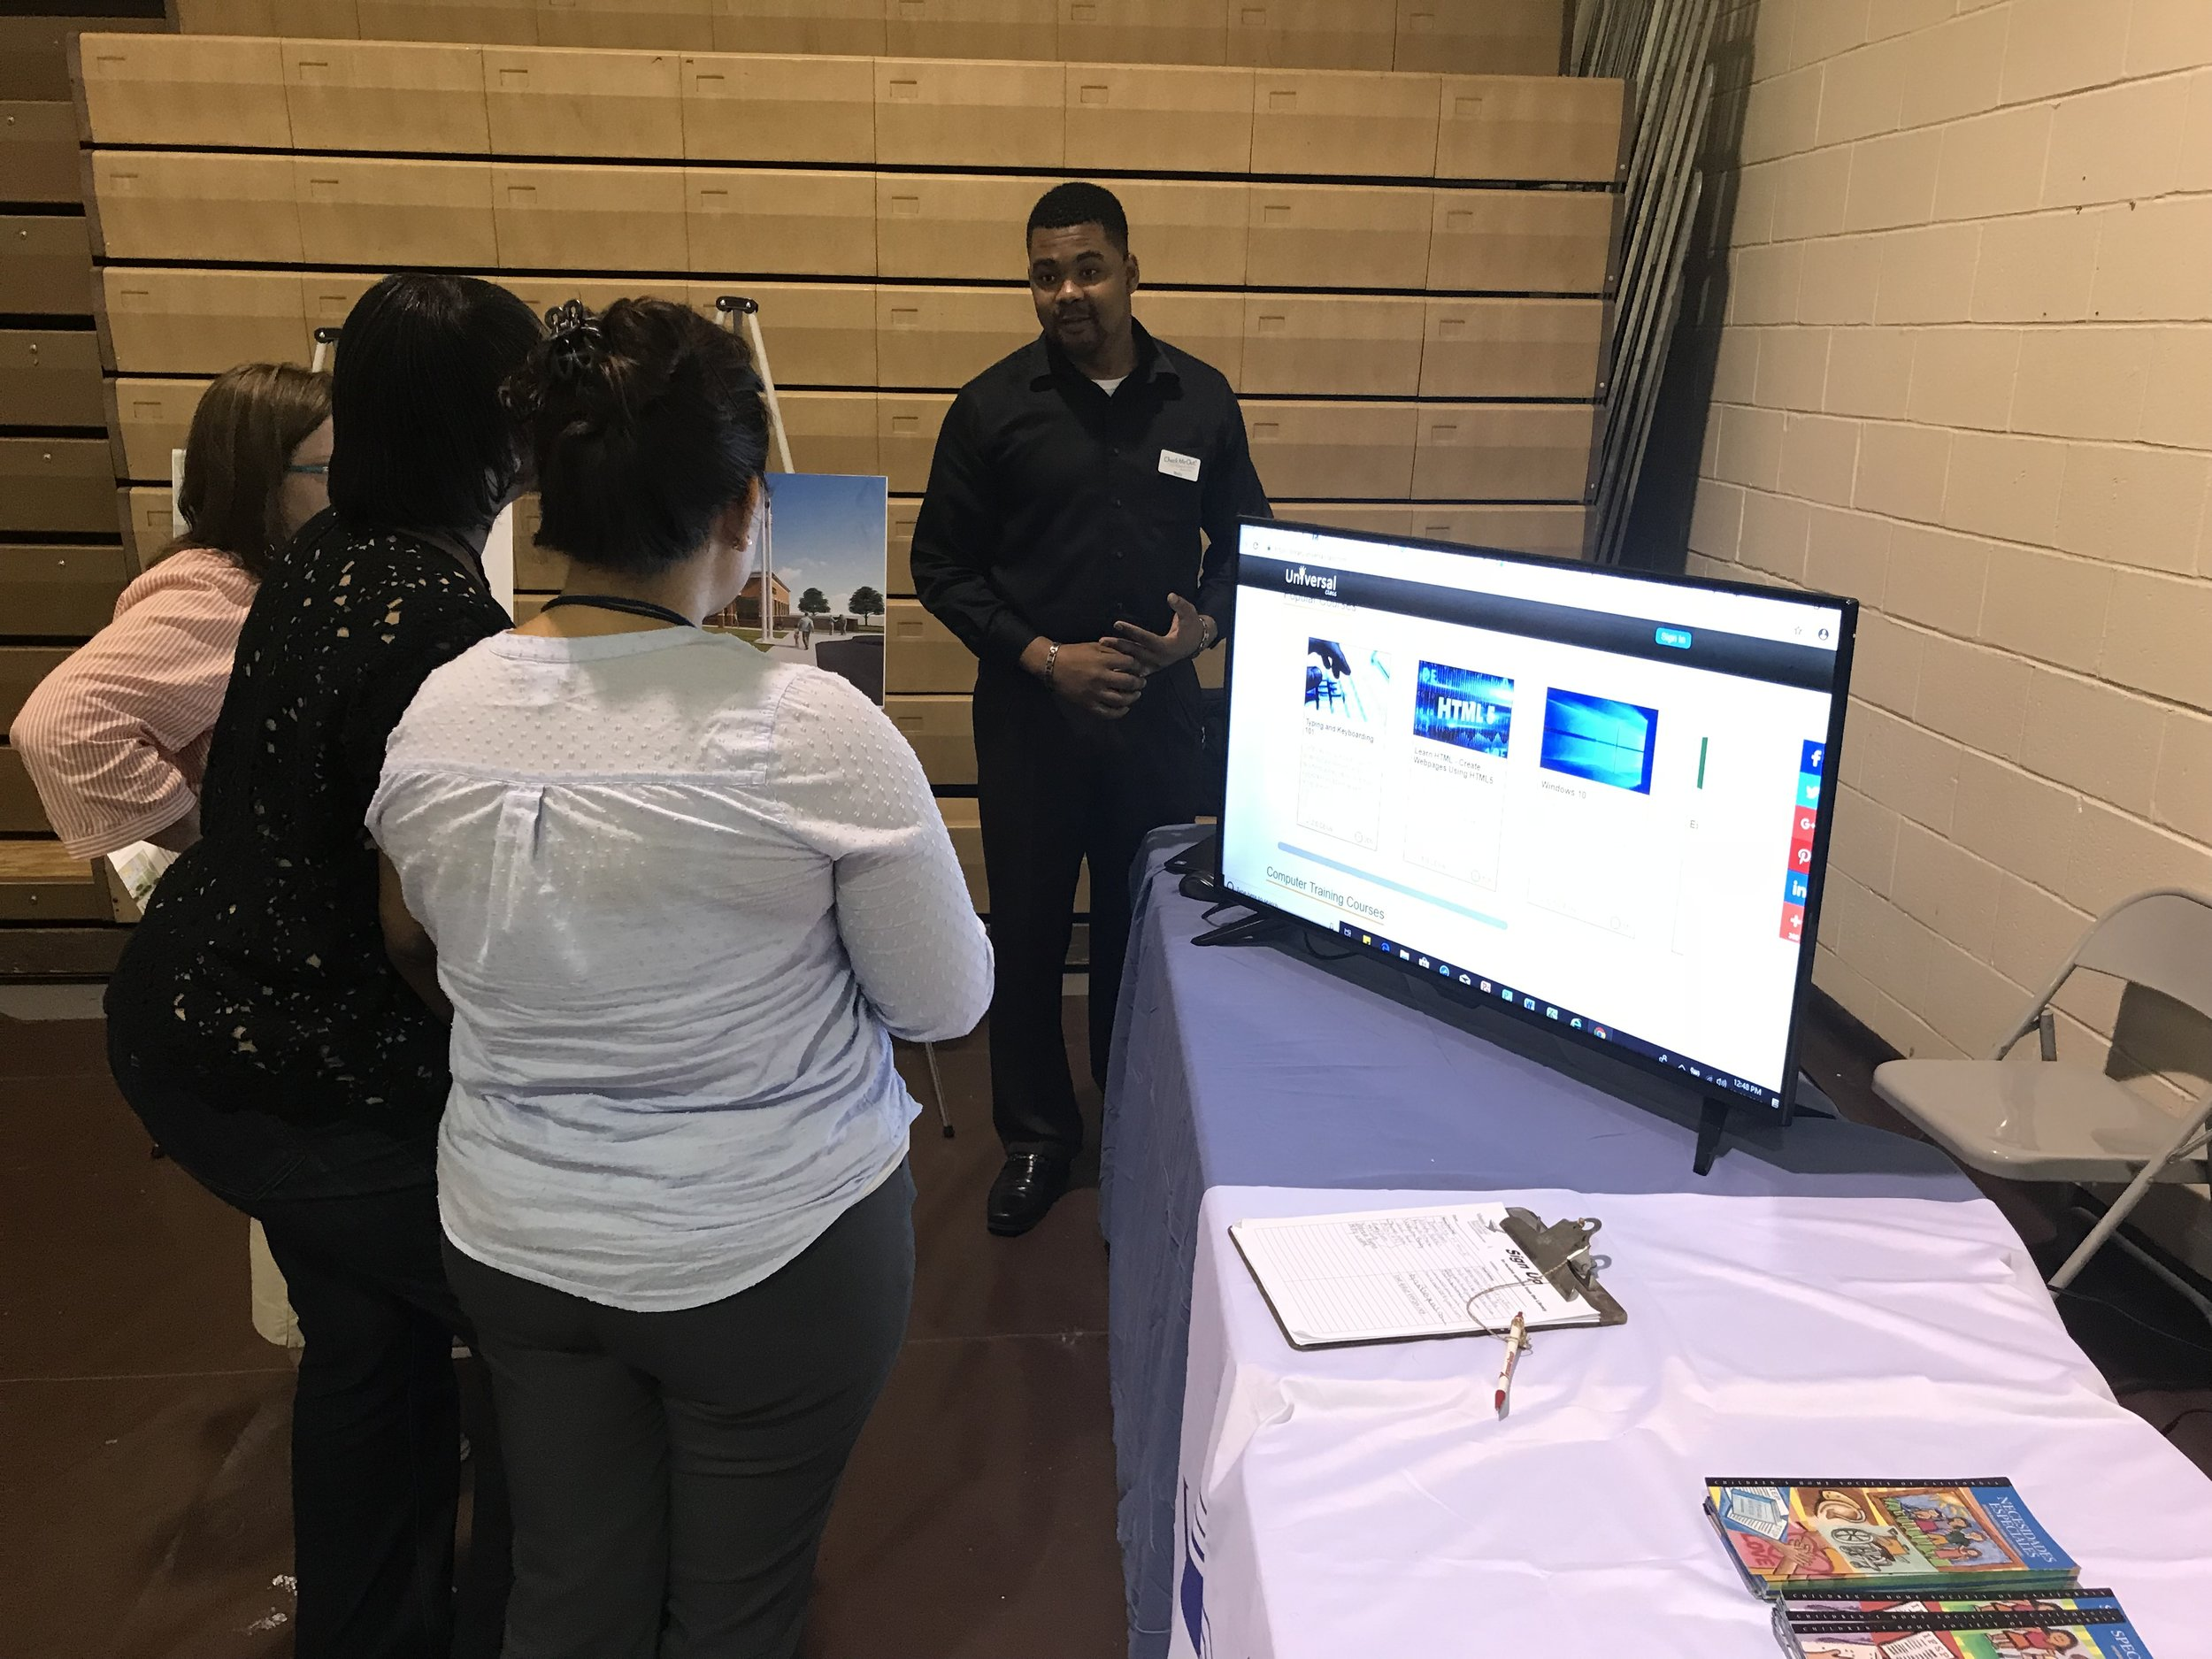 Photo: Wells Gregoire, Adult Services Specialist for Eastern Shore Public Library, demonstrates career resources on FindItVirginia at the recent Disabilities Awareness event.